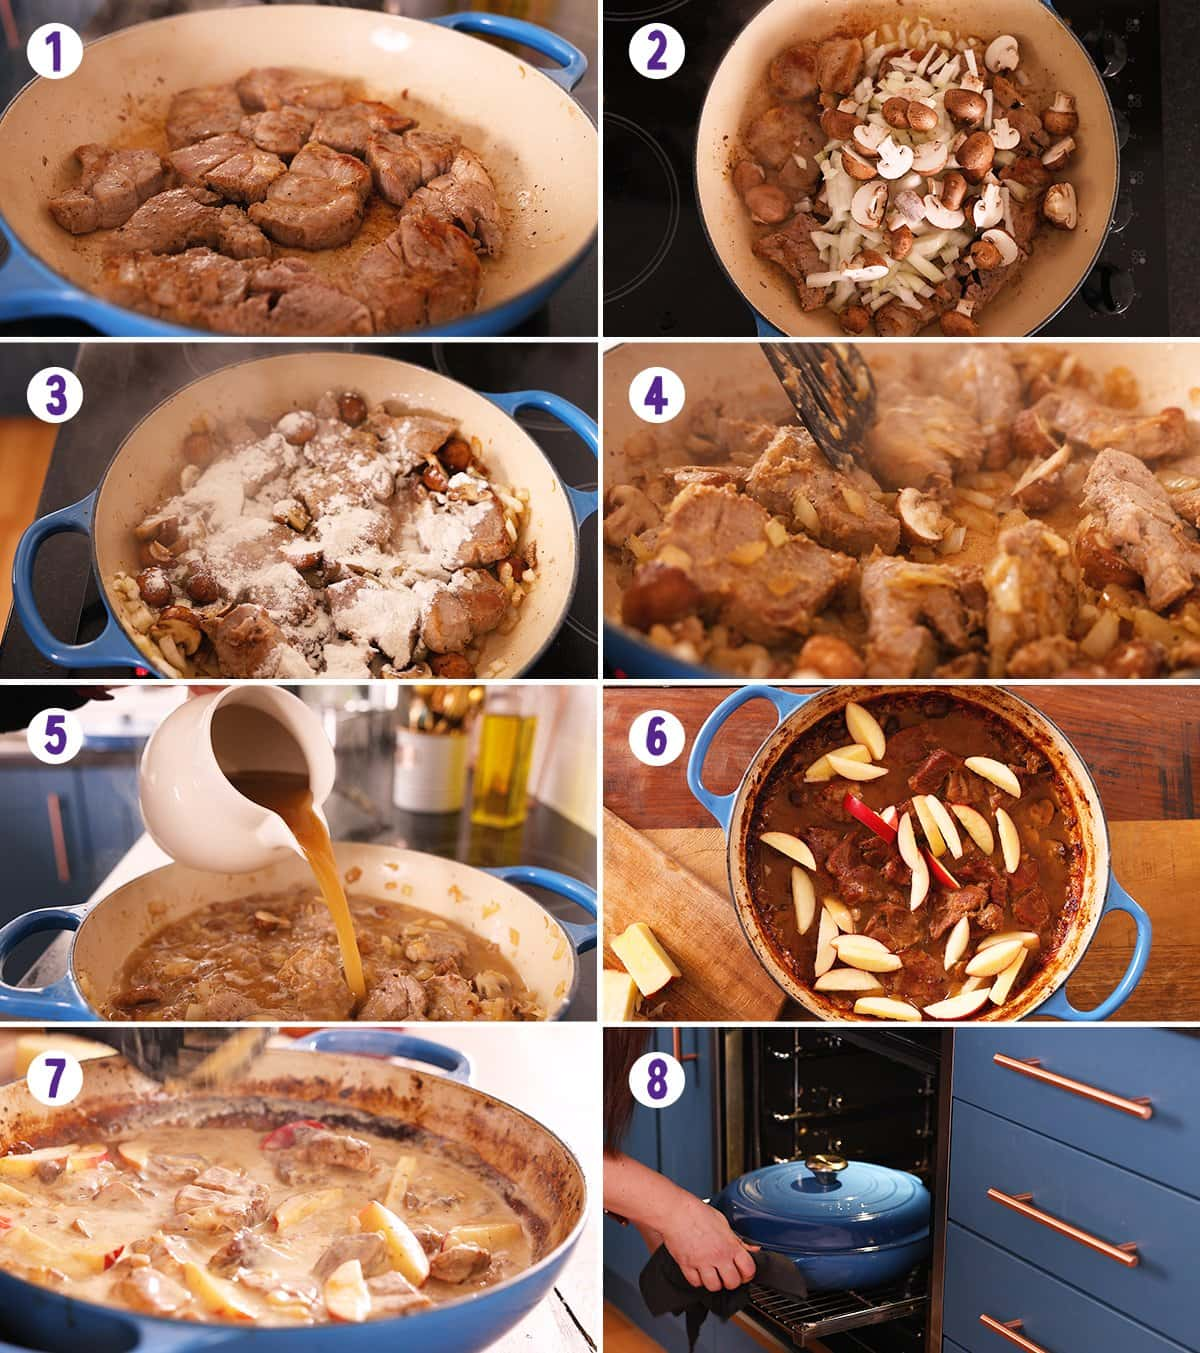 8 image collage showing how to make creamy pork and apple casserole